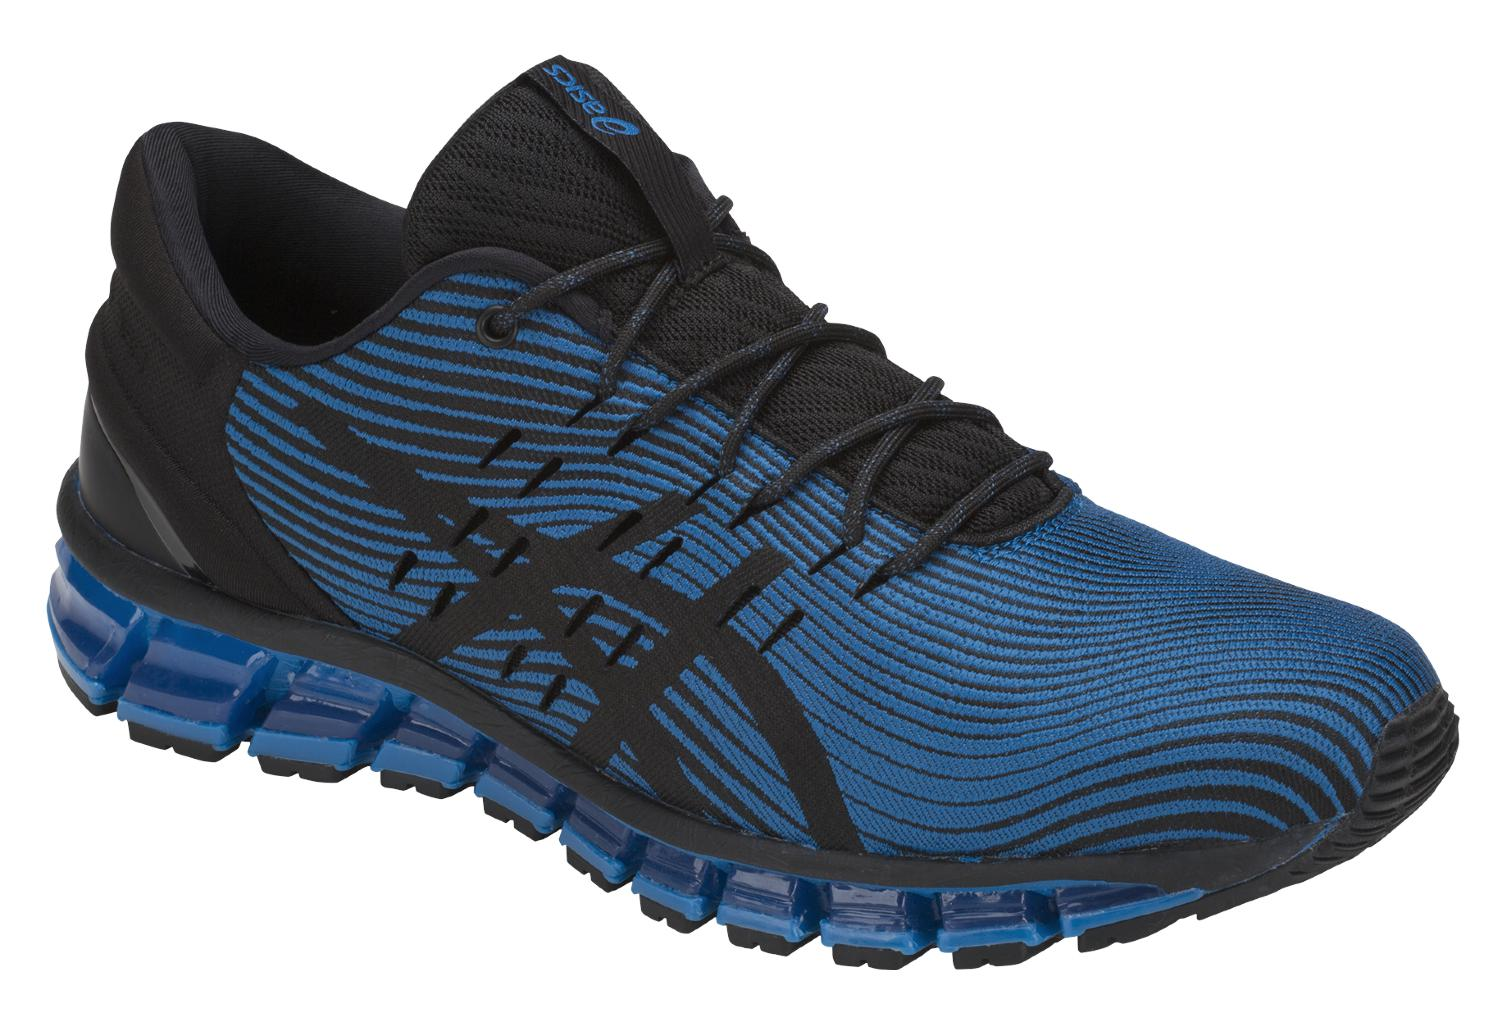 better hot-selling clearance durable service Asics Gel-Quantum 360 4 Blue Black